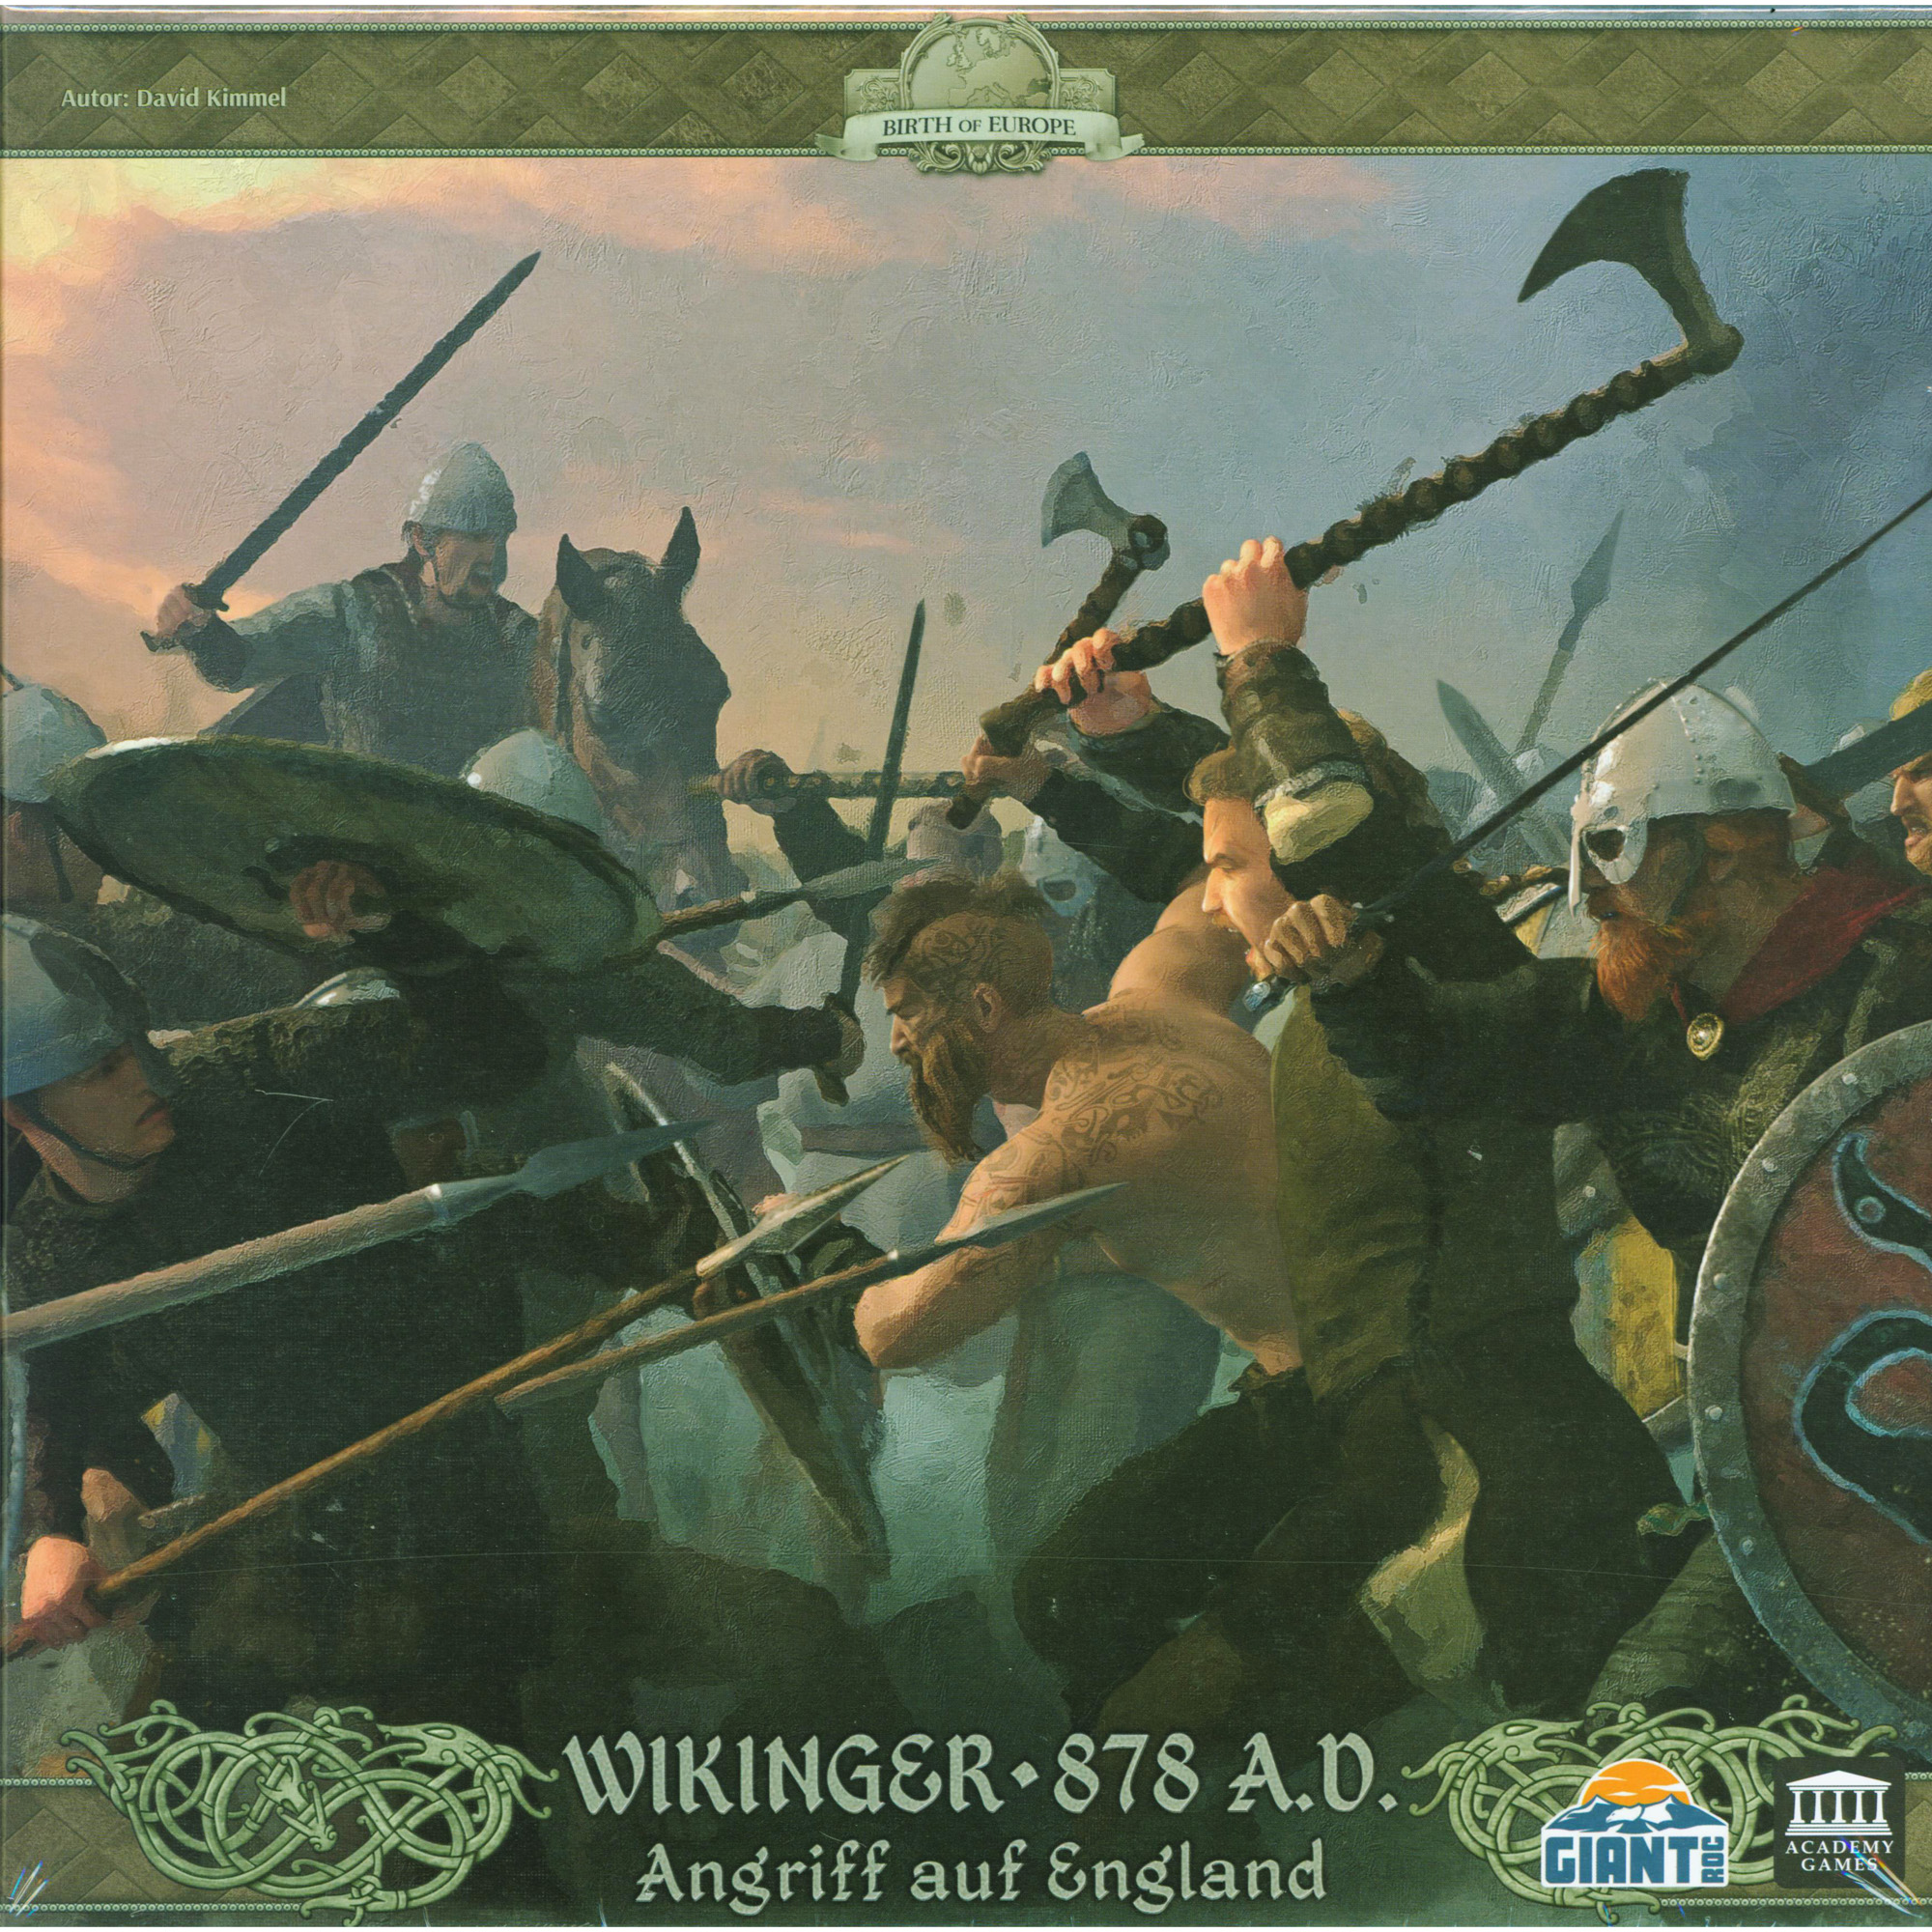 Wikinger 878 A.D. - Angriff auf England